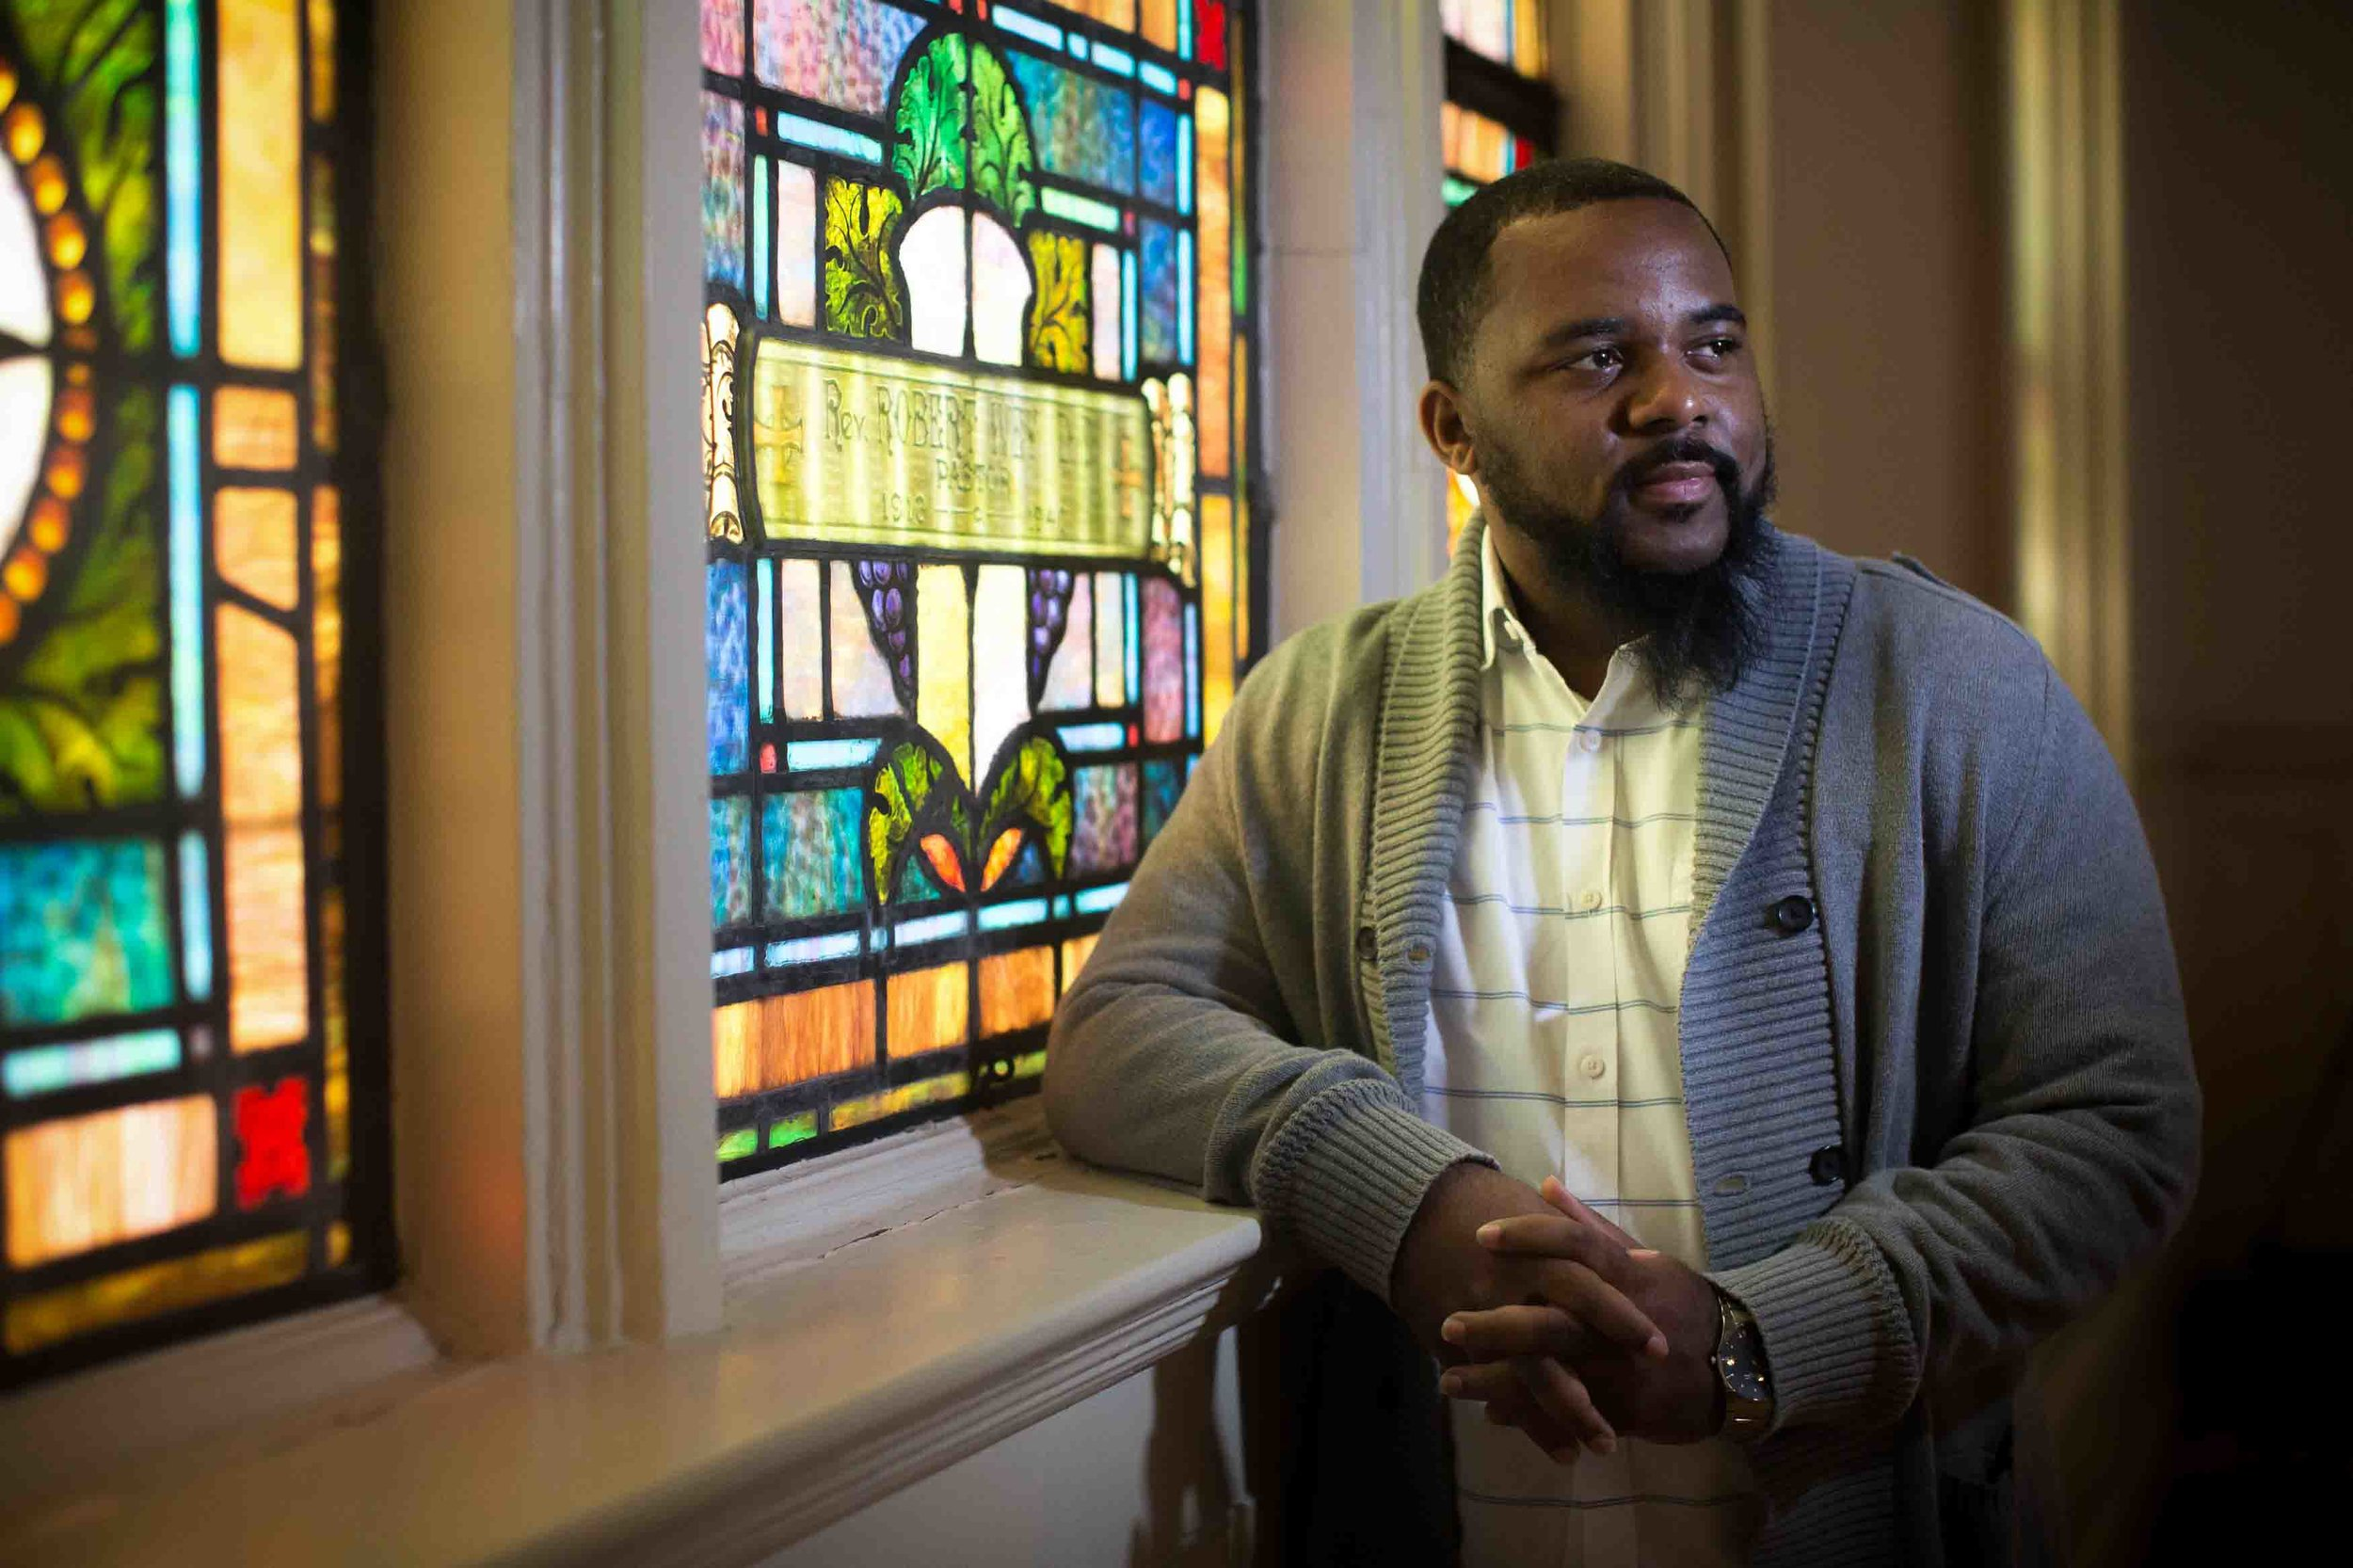 Billy Honor, pastor of Pulse Church, poses for a portrait before a worship service at his church, Sunday, Nov. 13, 2016, in Atlanta.  Branden Camp / for NBC News